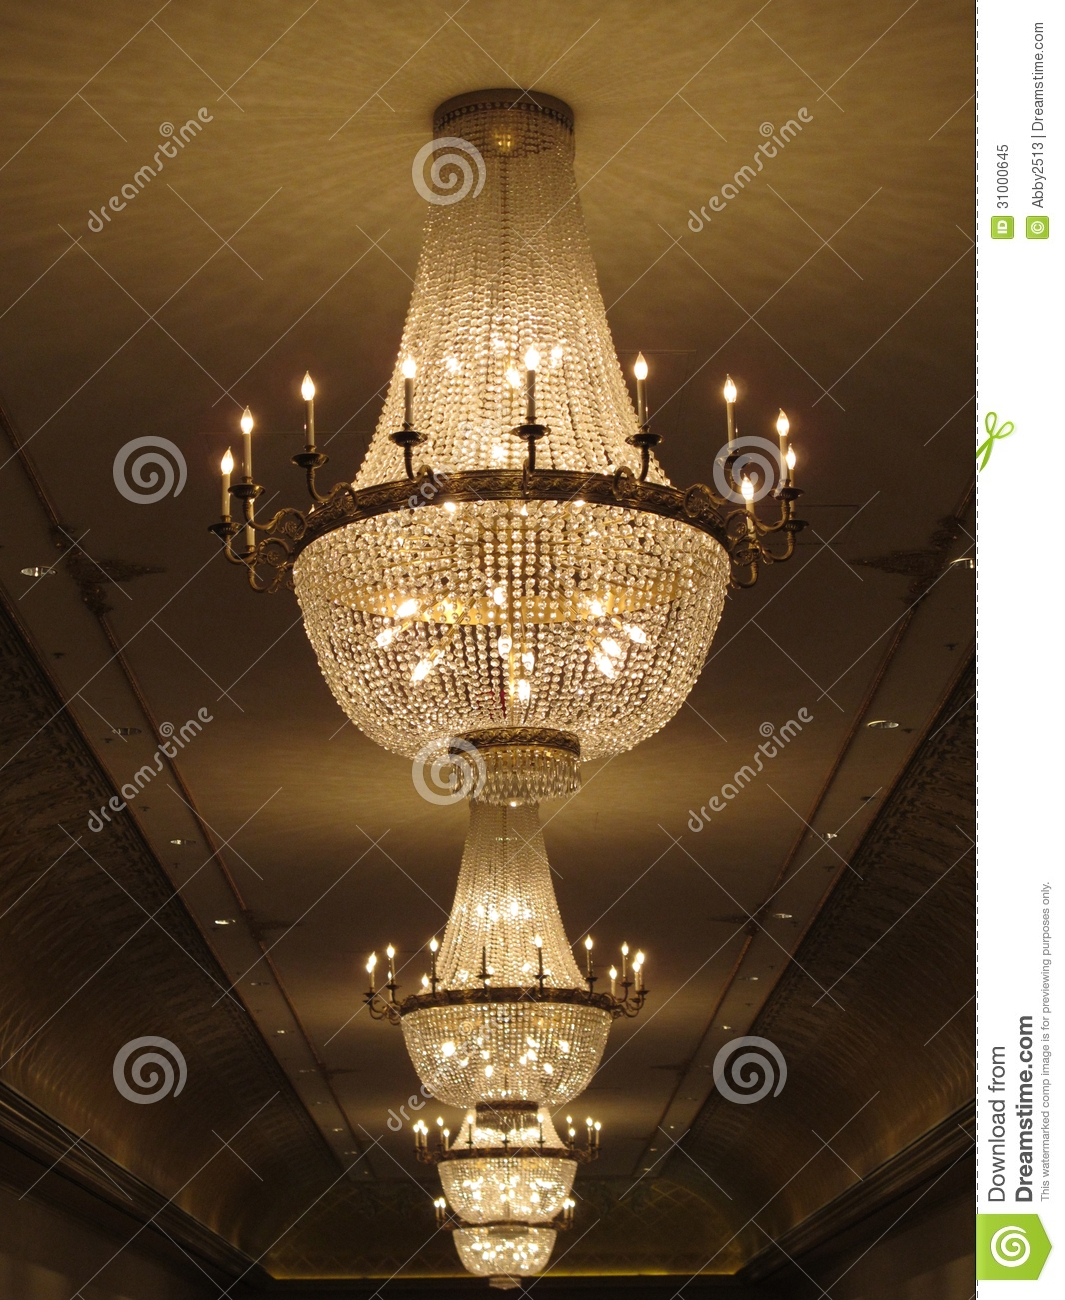 Gorgeous Crystal Chandelier Royalty Free Stock Photo Image 31000645 In Huge Crystal Chandeliers (View 8 of 15)